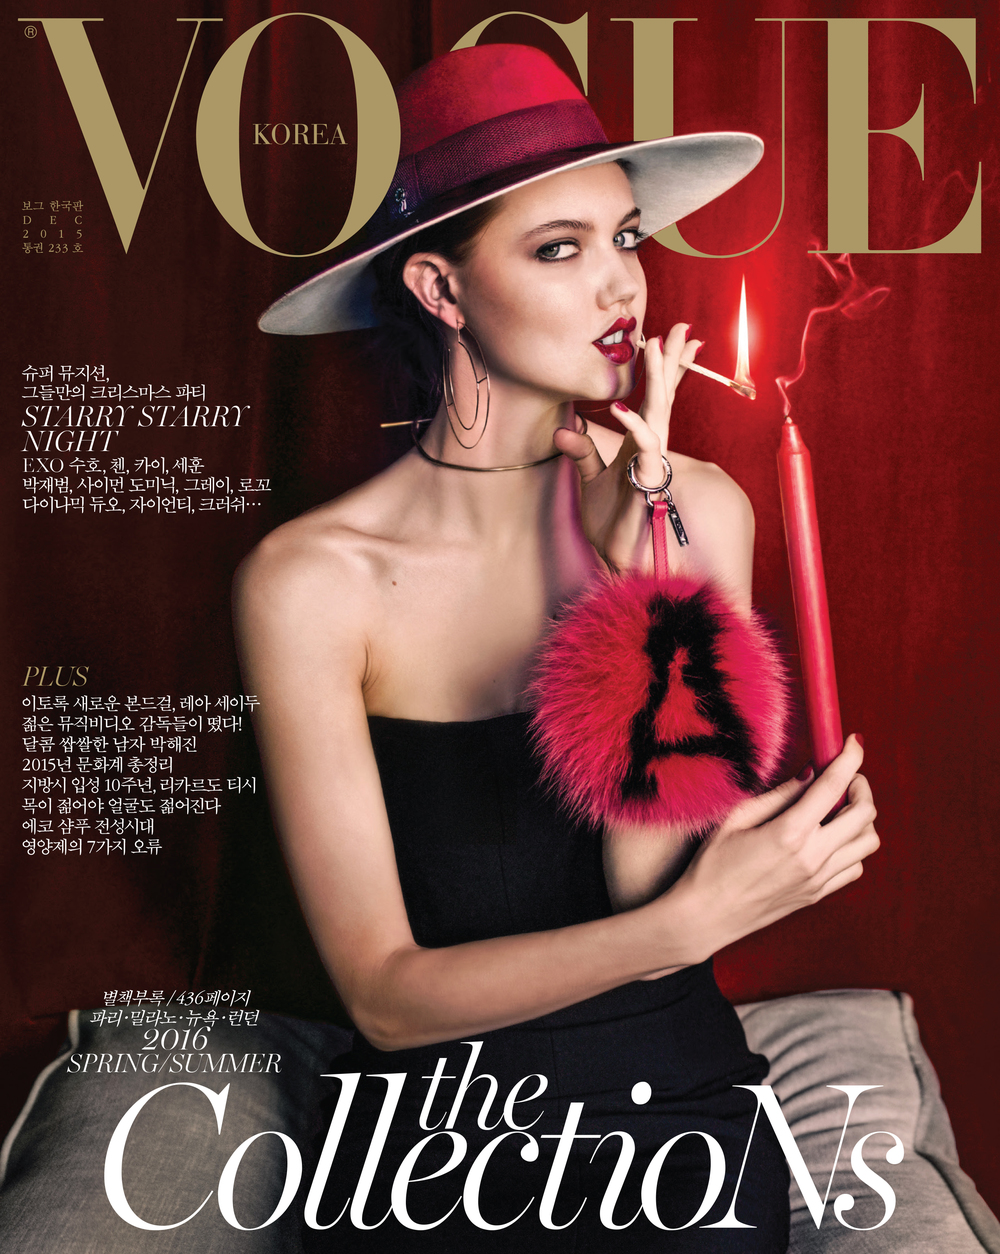 VOGUE_KOREA_DECEMBER_2015_COVER.jpg